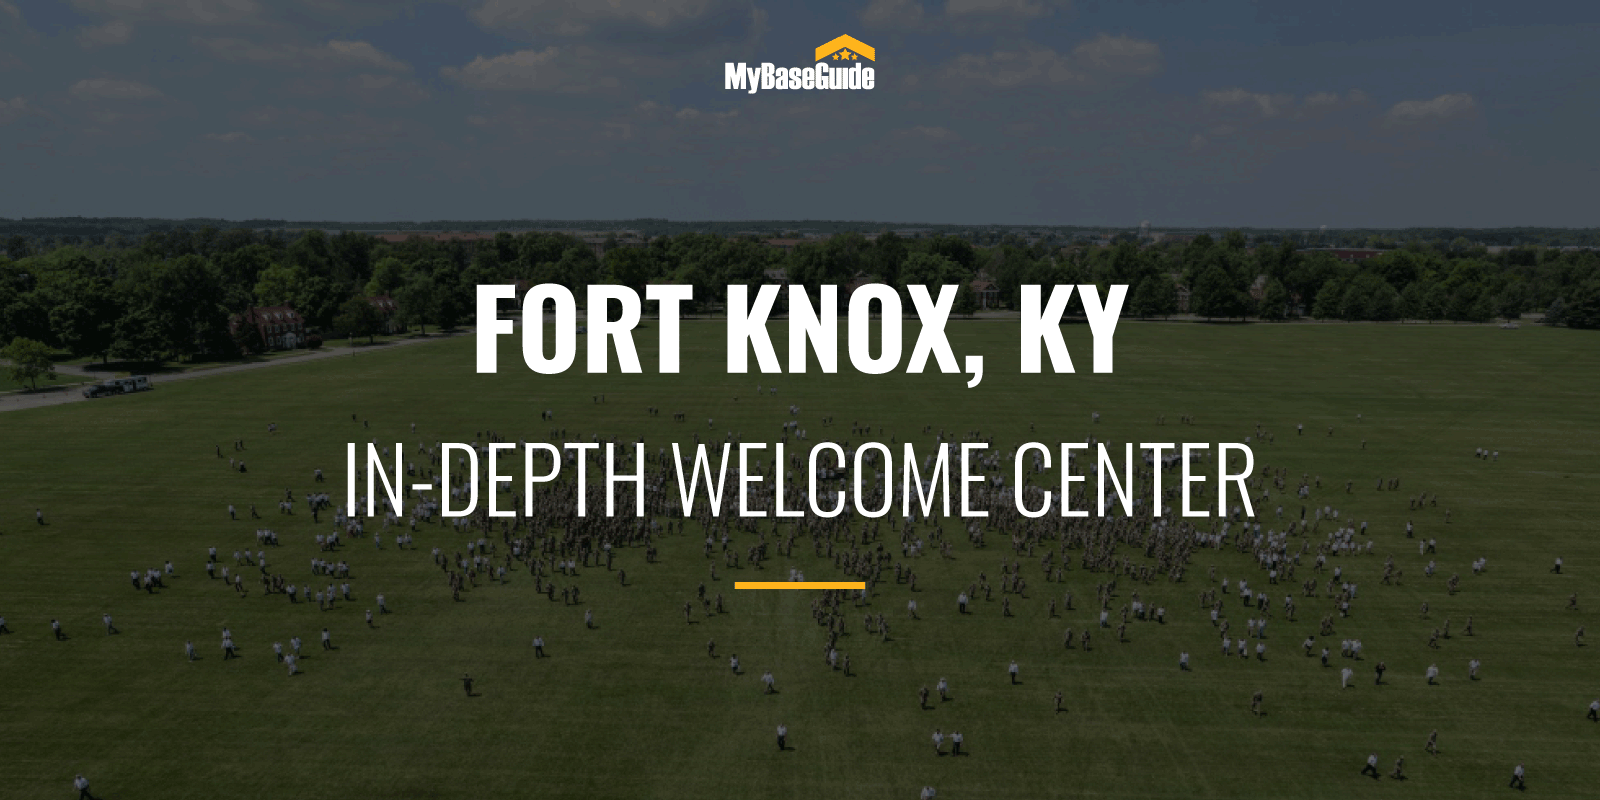 Fort Knox In-Depth Welcome Center